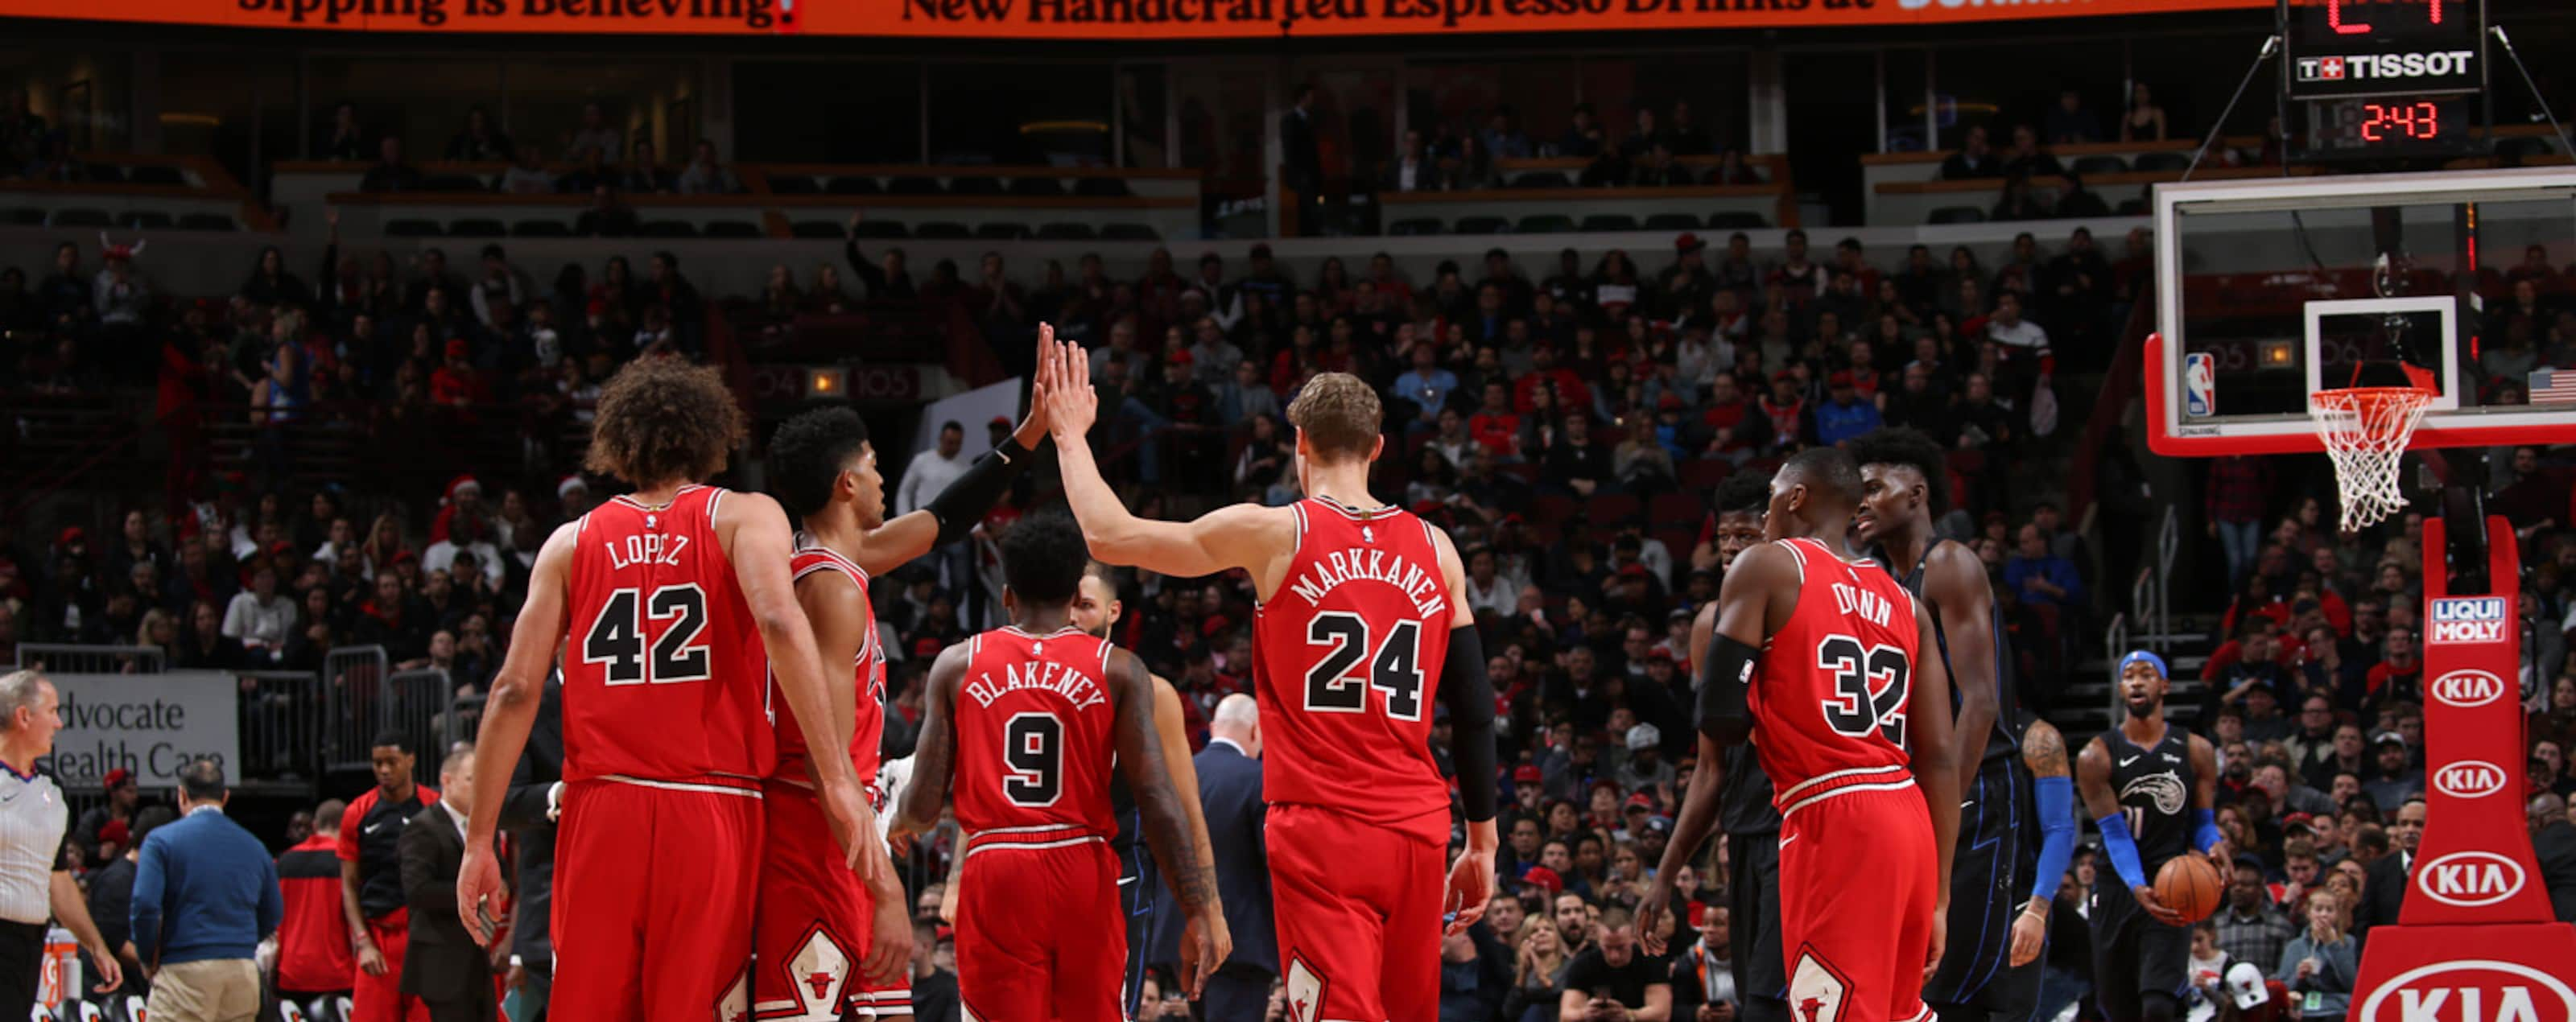 Chicago Bulls players high-five one another while walking to the bench.